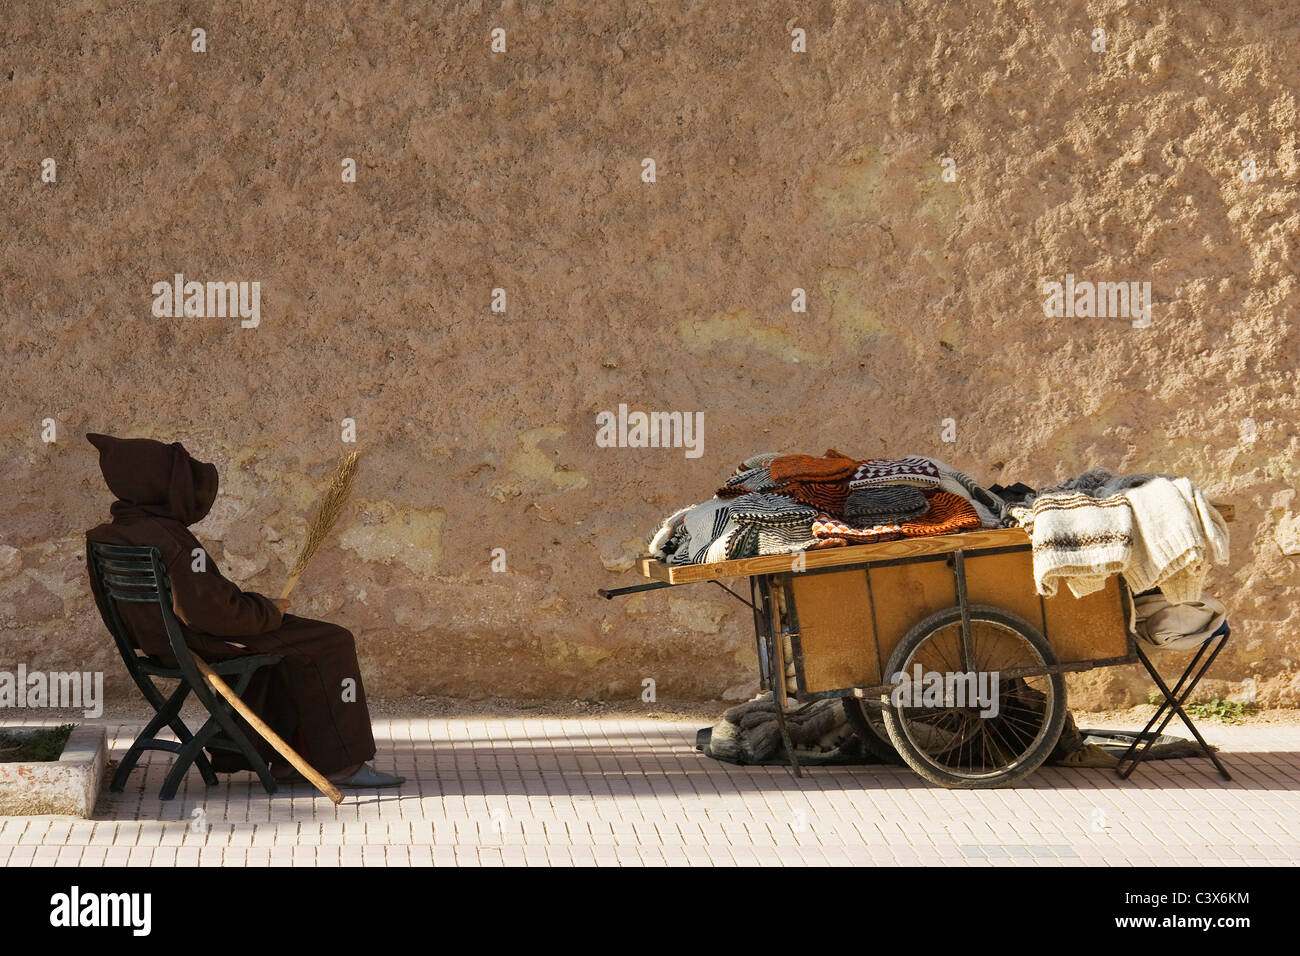 Old man and his handcart with woollens for sale at the city wall of Essaouira, Morocco - Stock Image